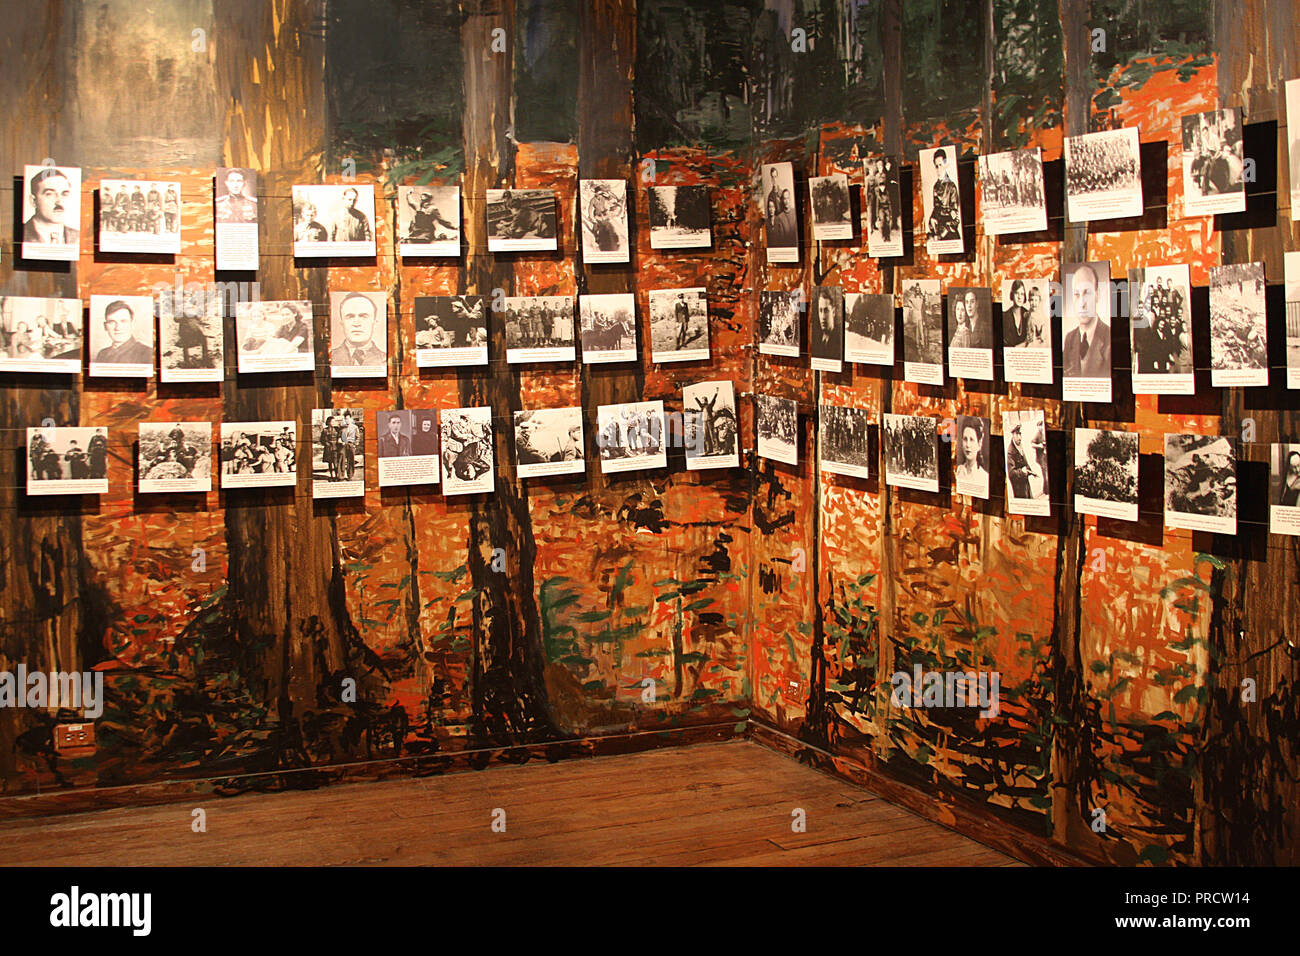 Historical photographs of Jewish people displayed at Virginia Holocaust Museum in Richmond, VA - Stock Image